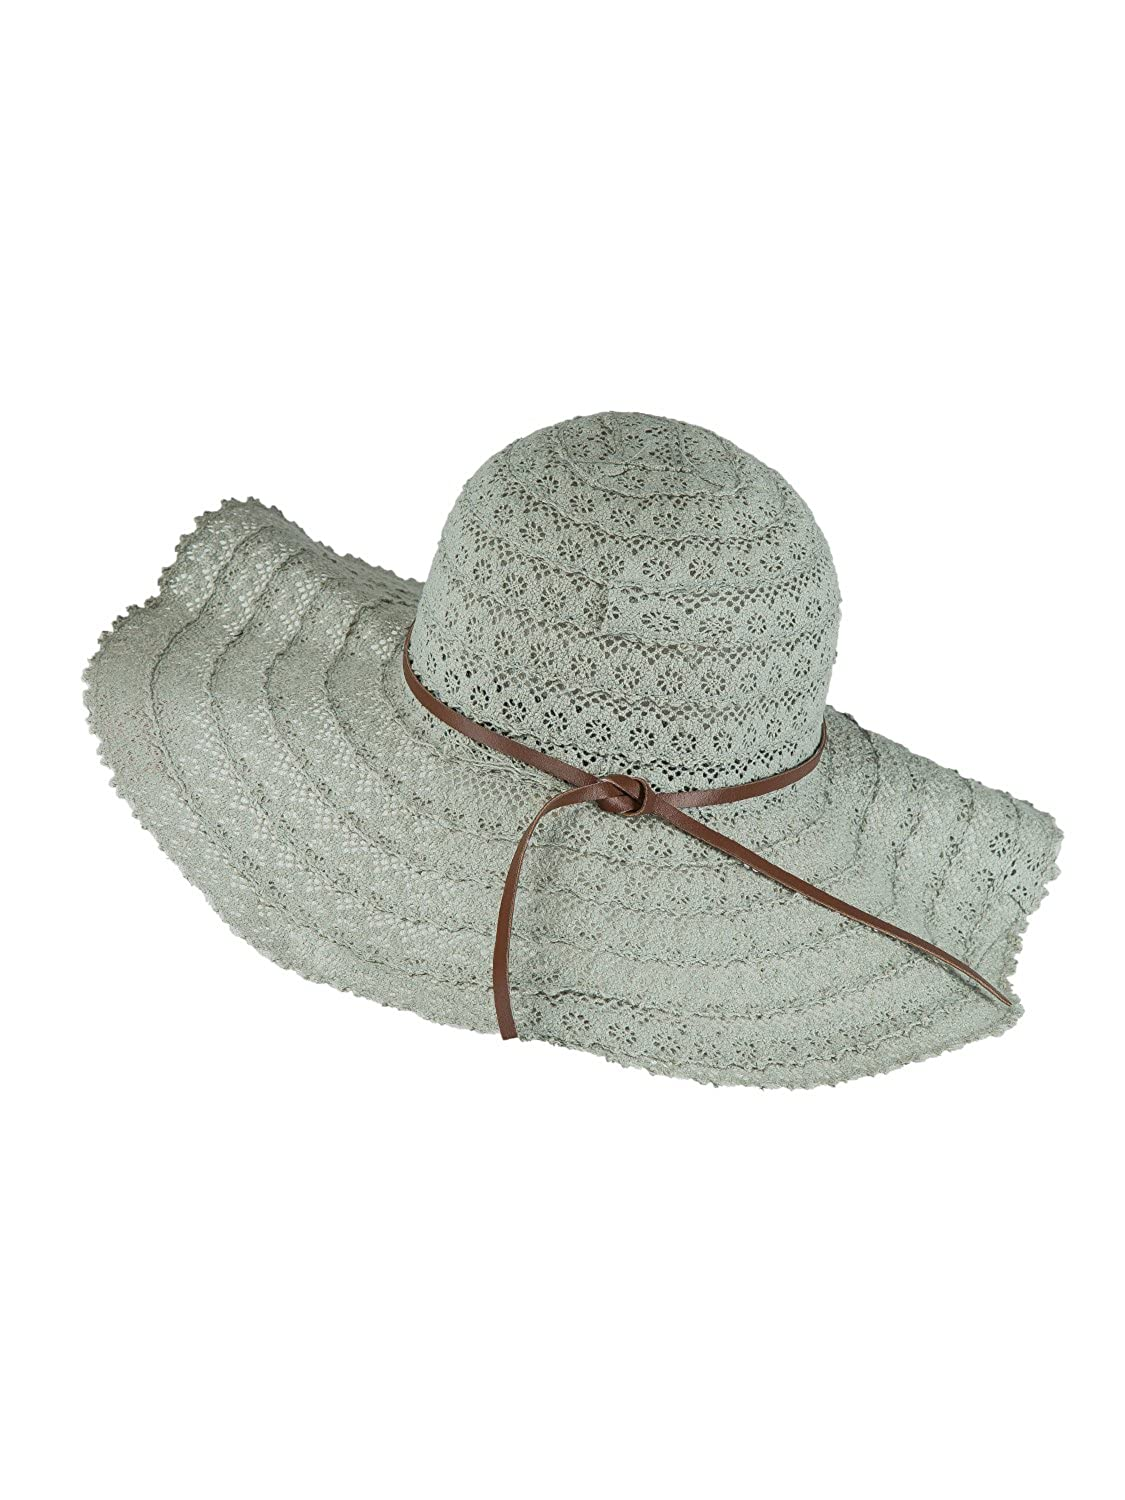 Grey PERSUN Straw Sun Hats Wide Brim Foldable Summer Travel Caps Uv Predection Bowknot Beach Hats